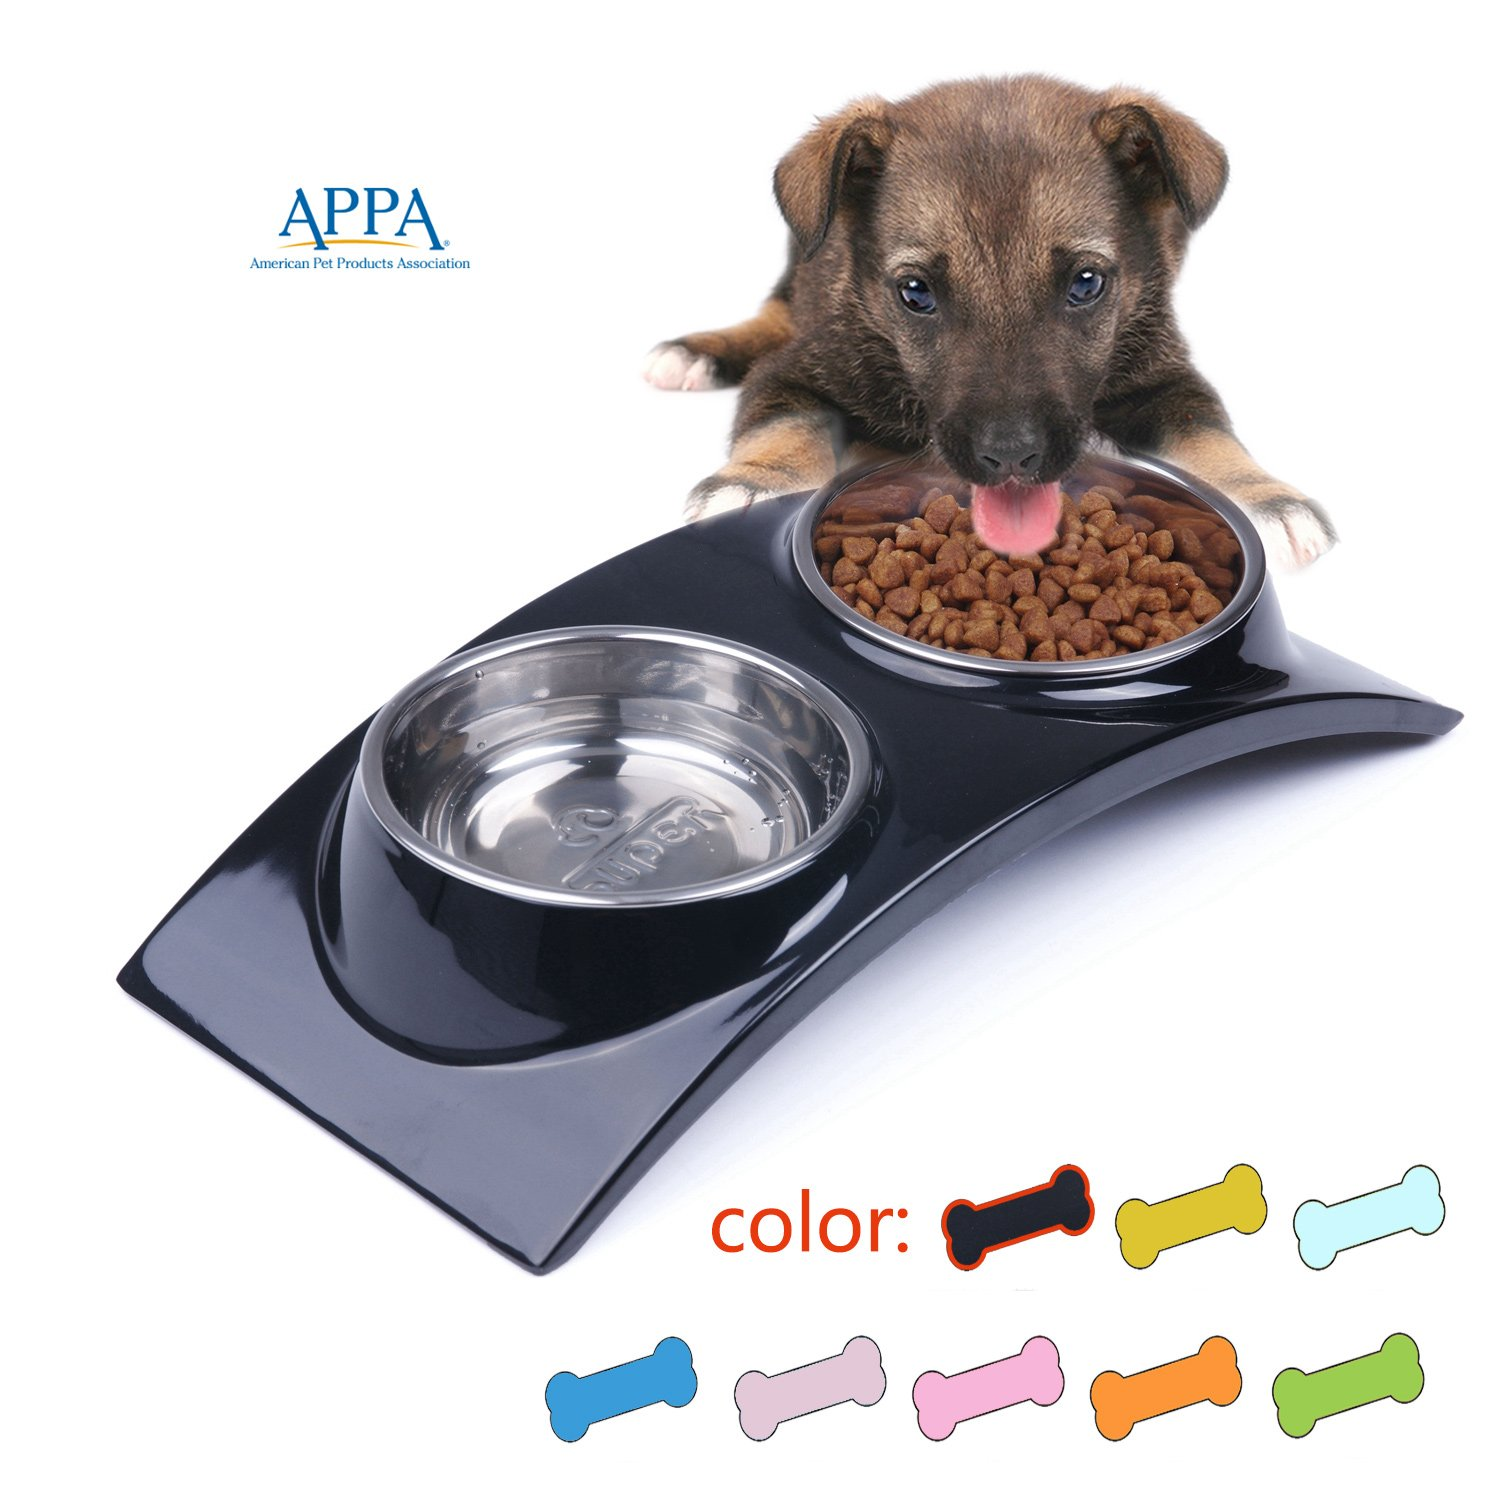 SUPER DESIGN SuperDesign Stainless Steel Double Bowl with Melamine Stand,  for Dog Cat Food and